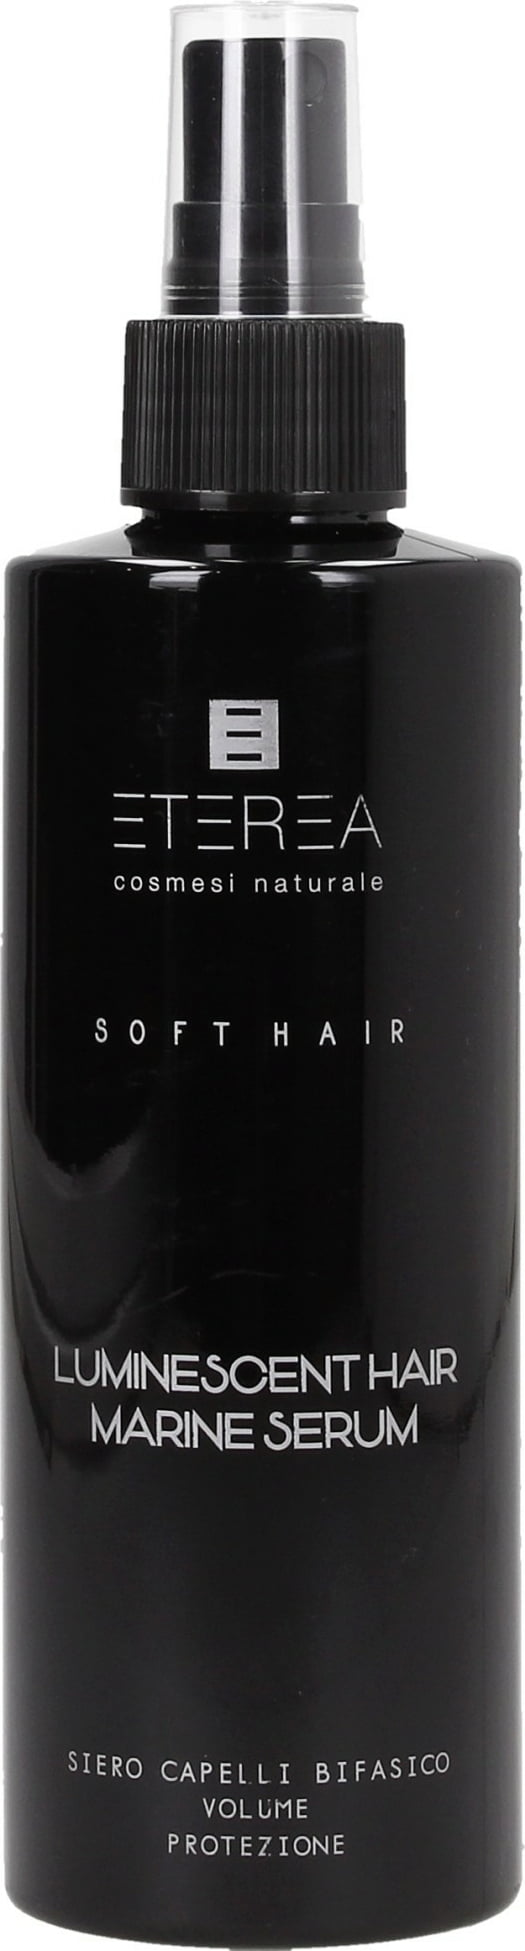 ETEREA Cosmesi Naturale Soft Hair Luminescent Hair Marine Serum - 200 ml von ETEREA Cosmesi Naturale